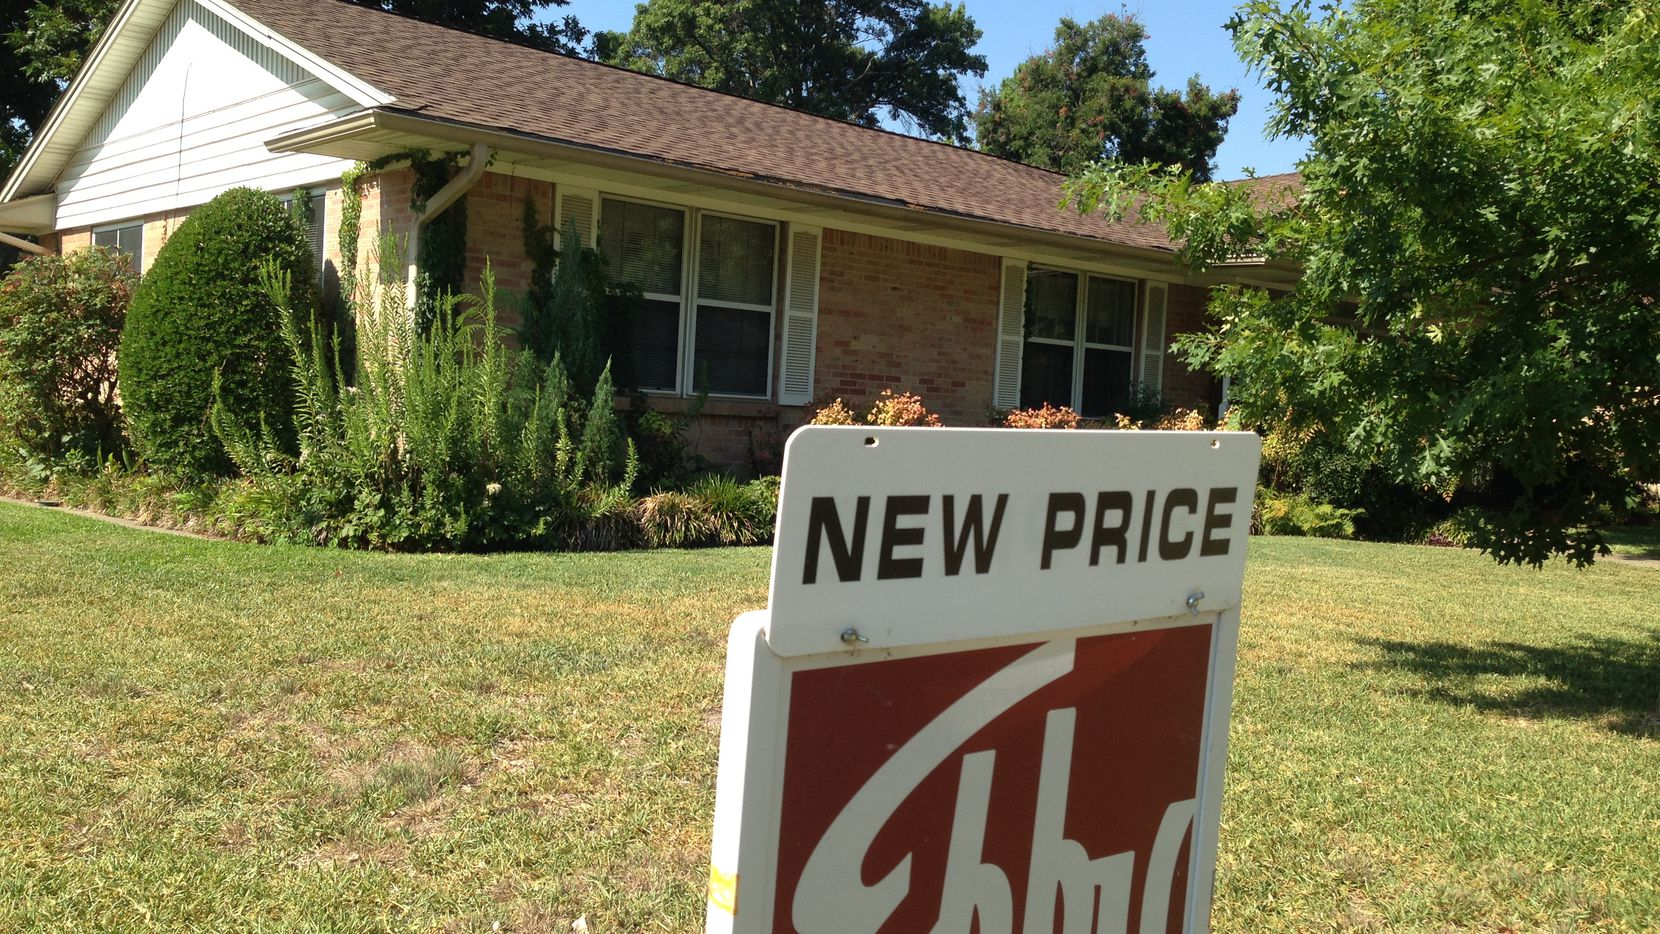 Dallas-area home prices were 2.7% higher in June than a year earlier.